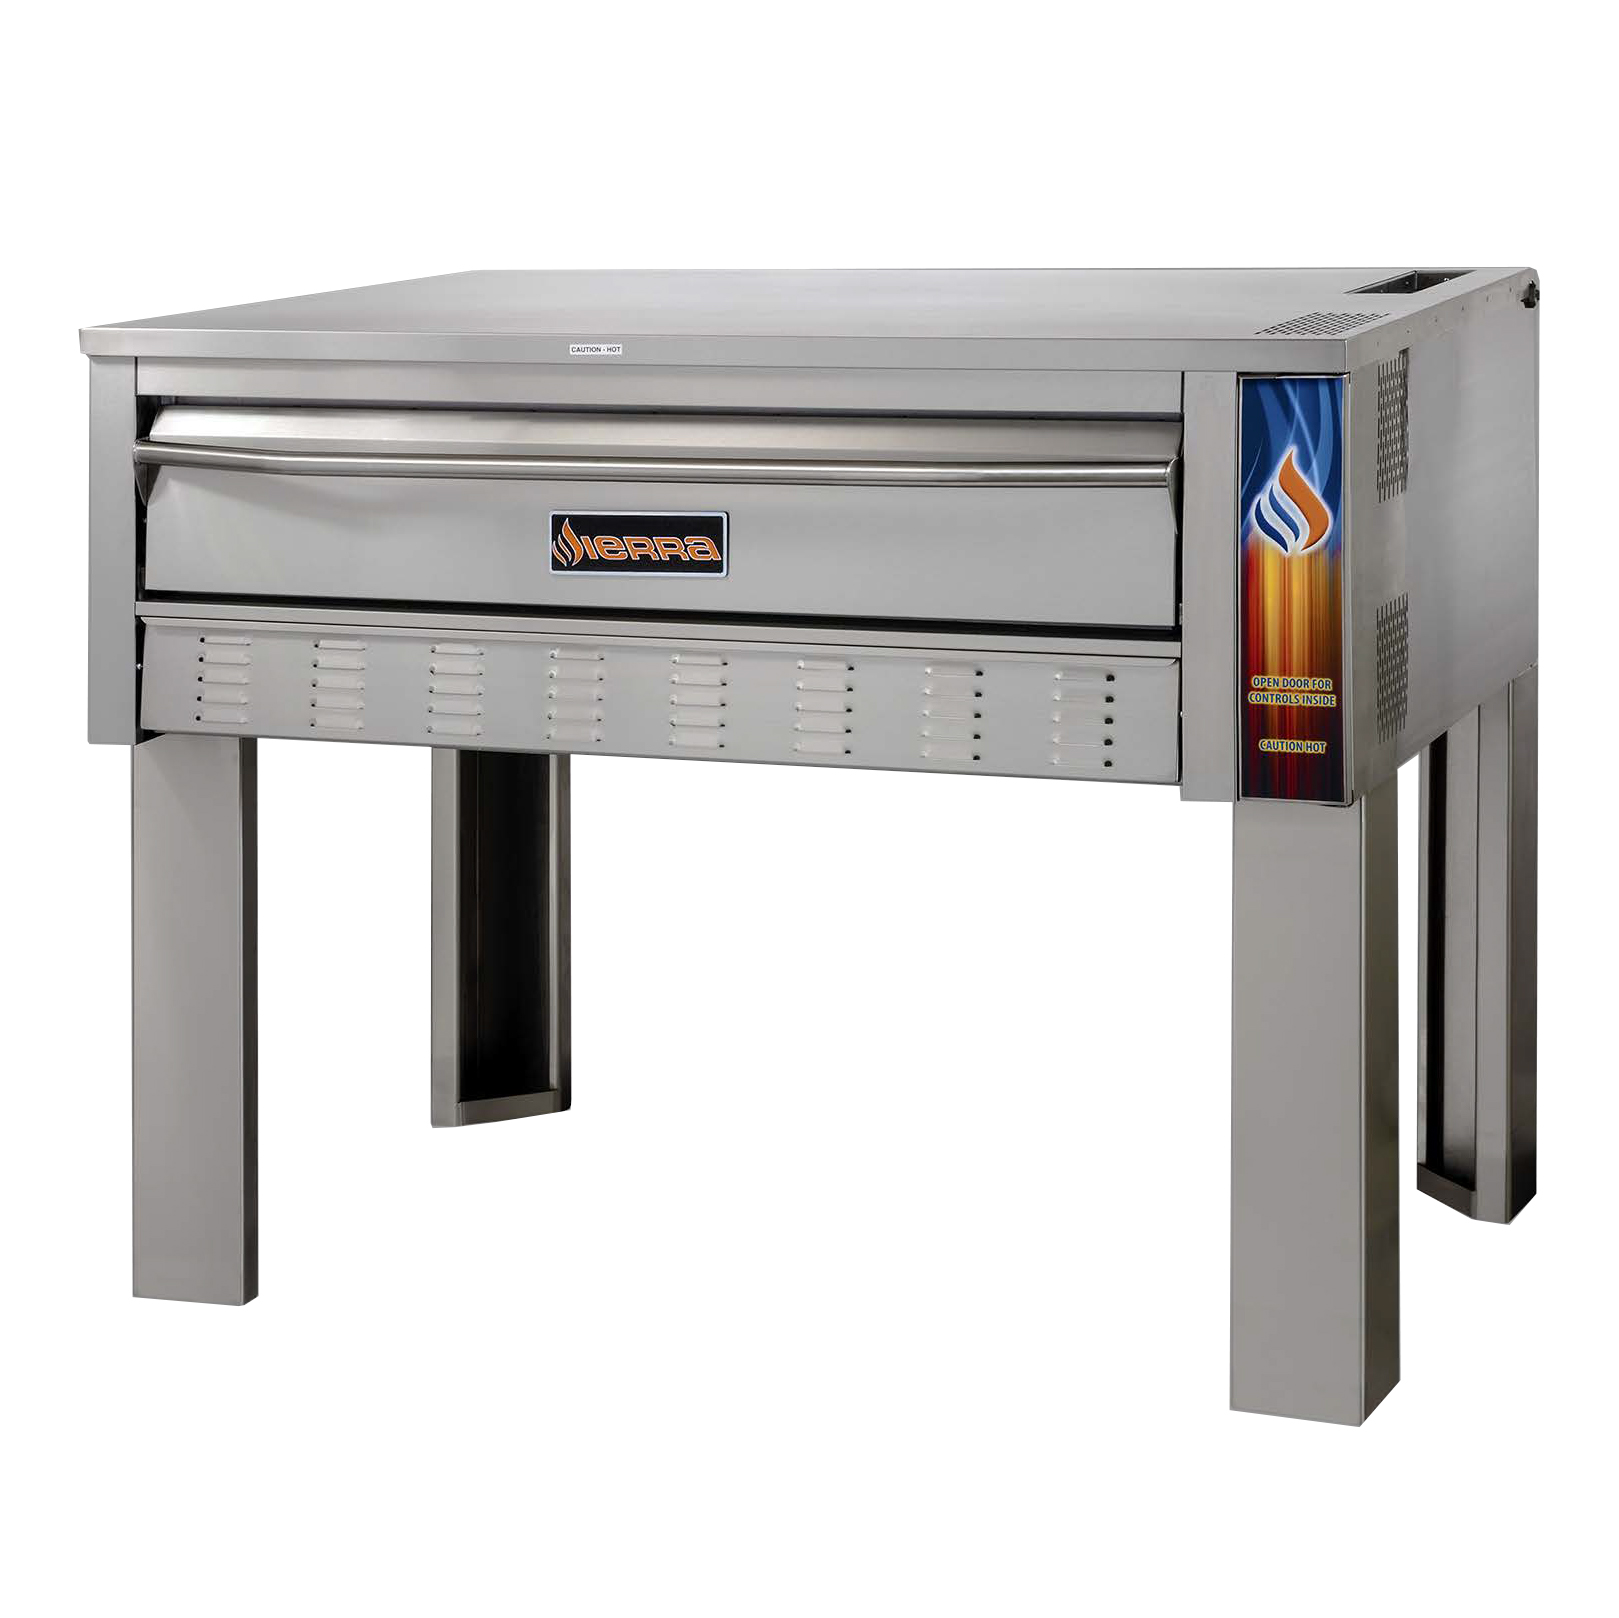 MVP SRPO-48G pizza bake oven, deck-type, gas